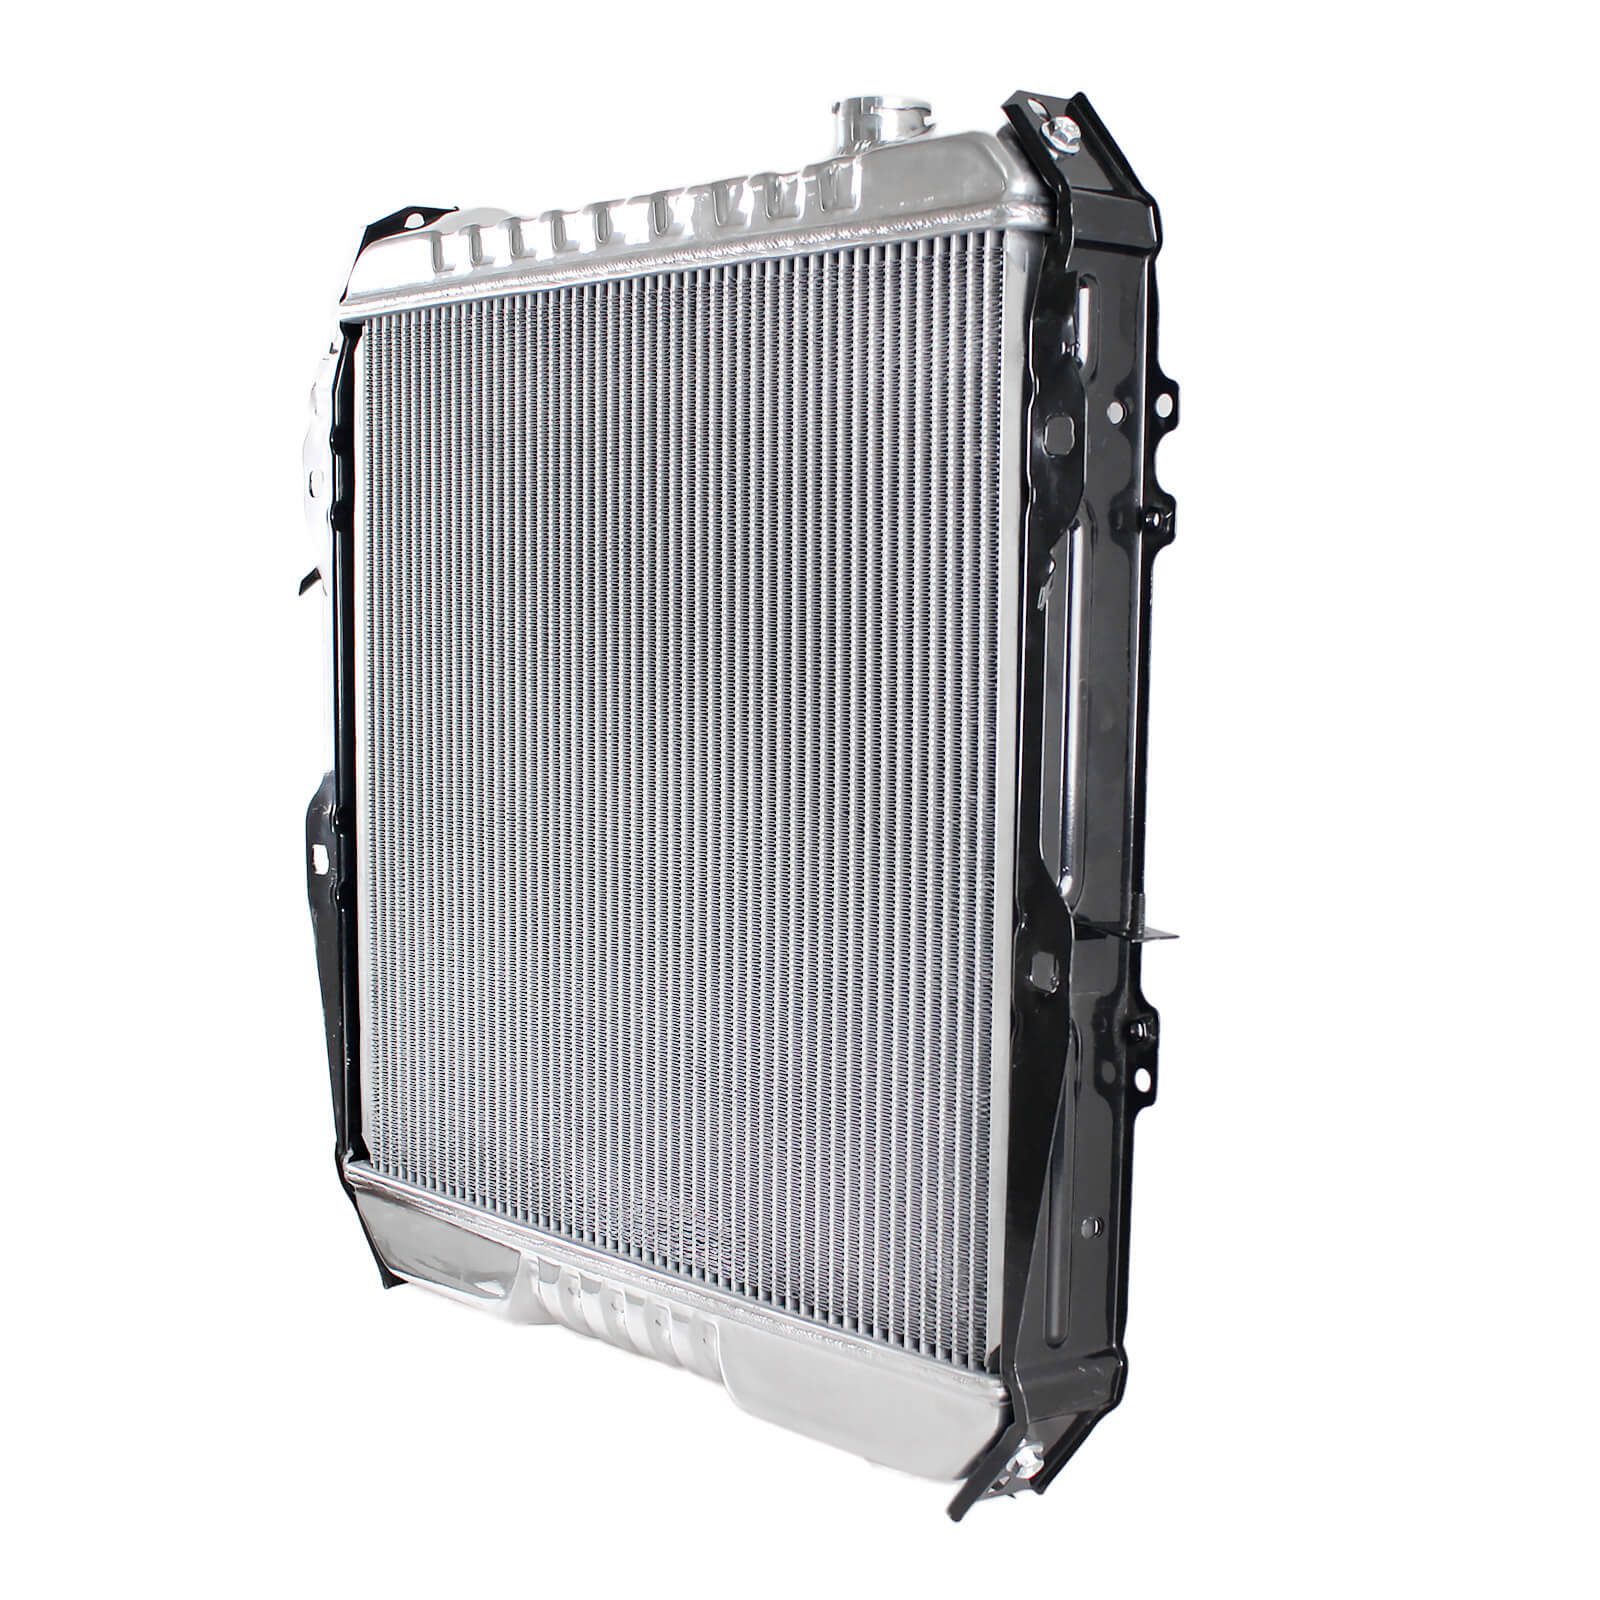 All Aluminum Radiator For Toyota Hilux LN85 LN86 2.8L 1988-1995 Manual